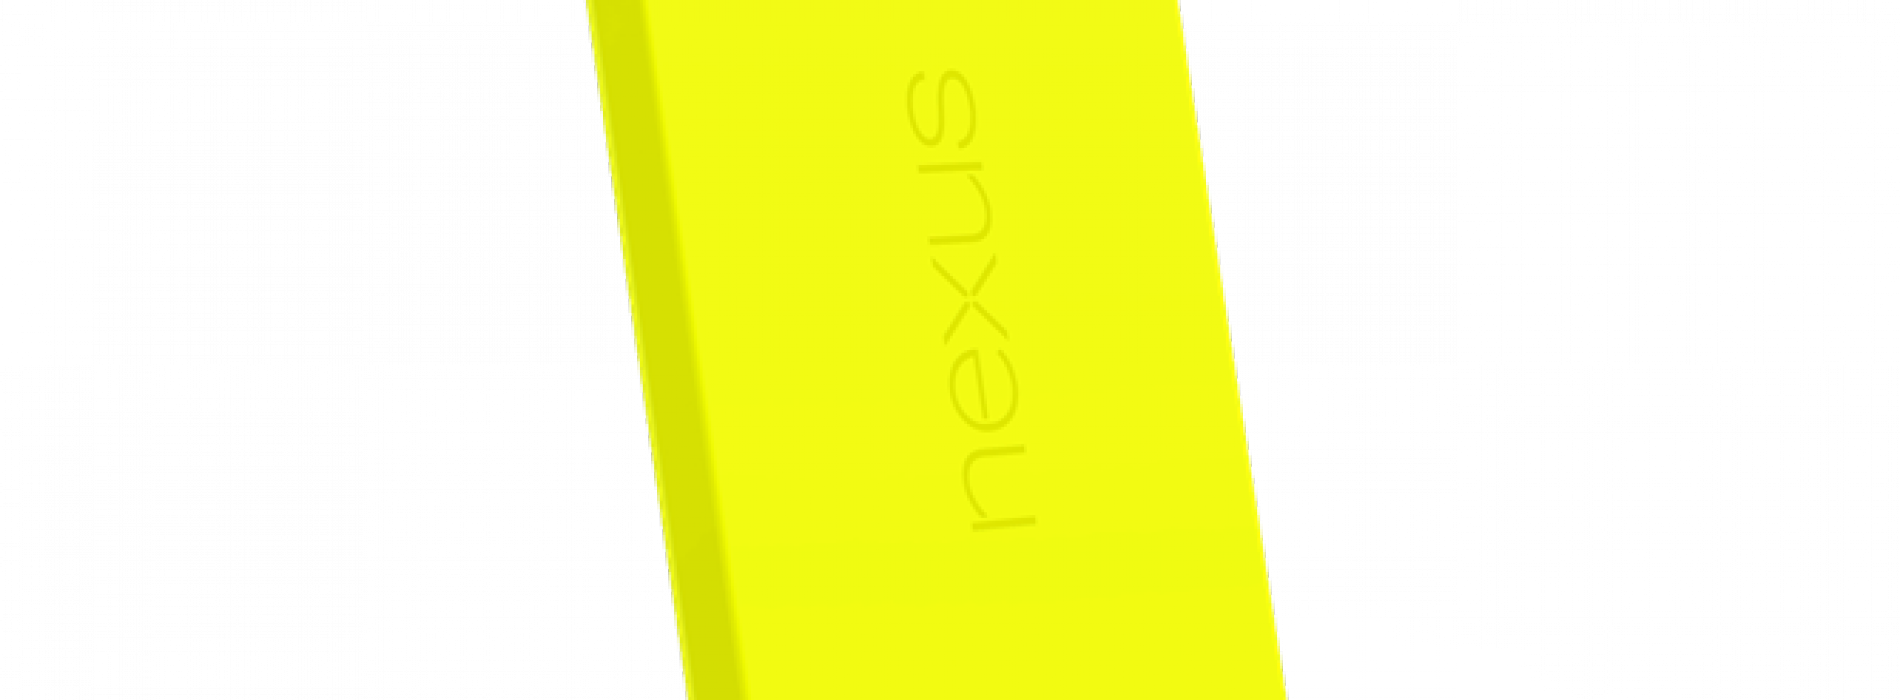 Black HTC One M8, yellow Nexus 5 on the horizon